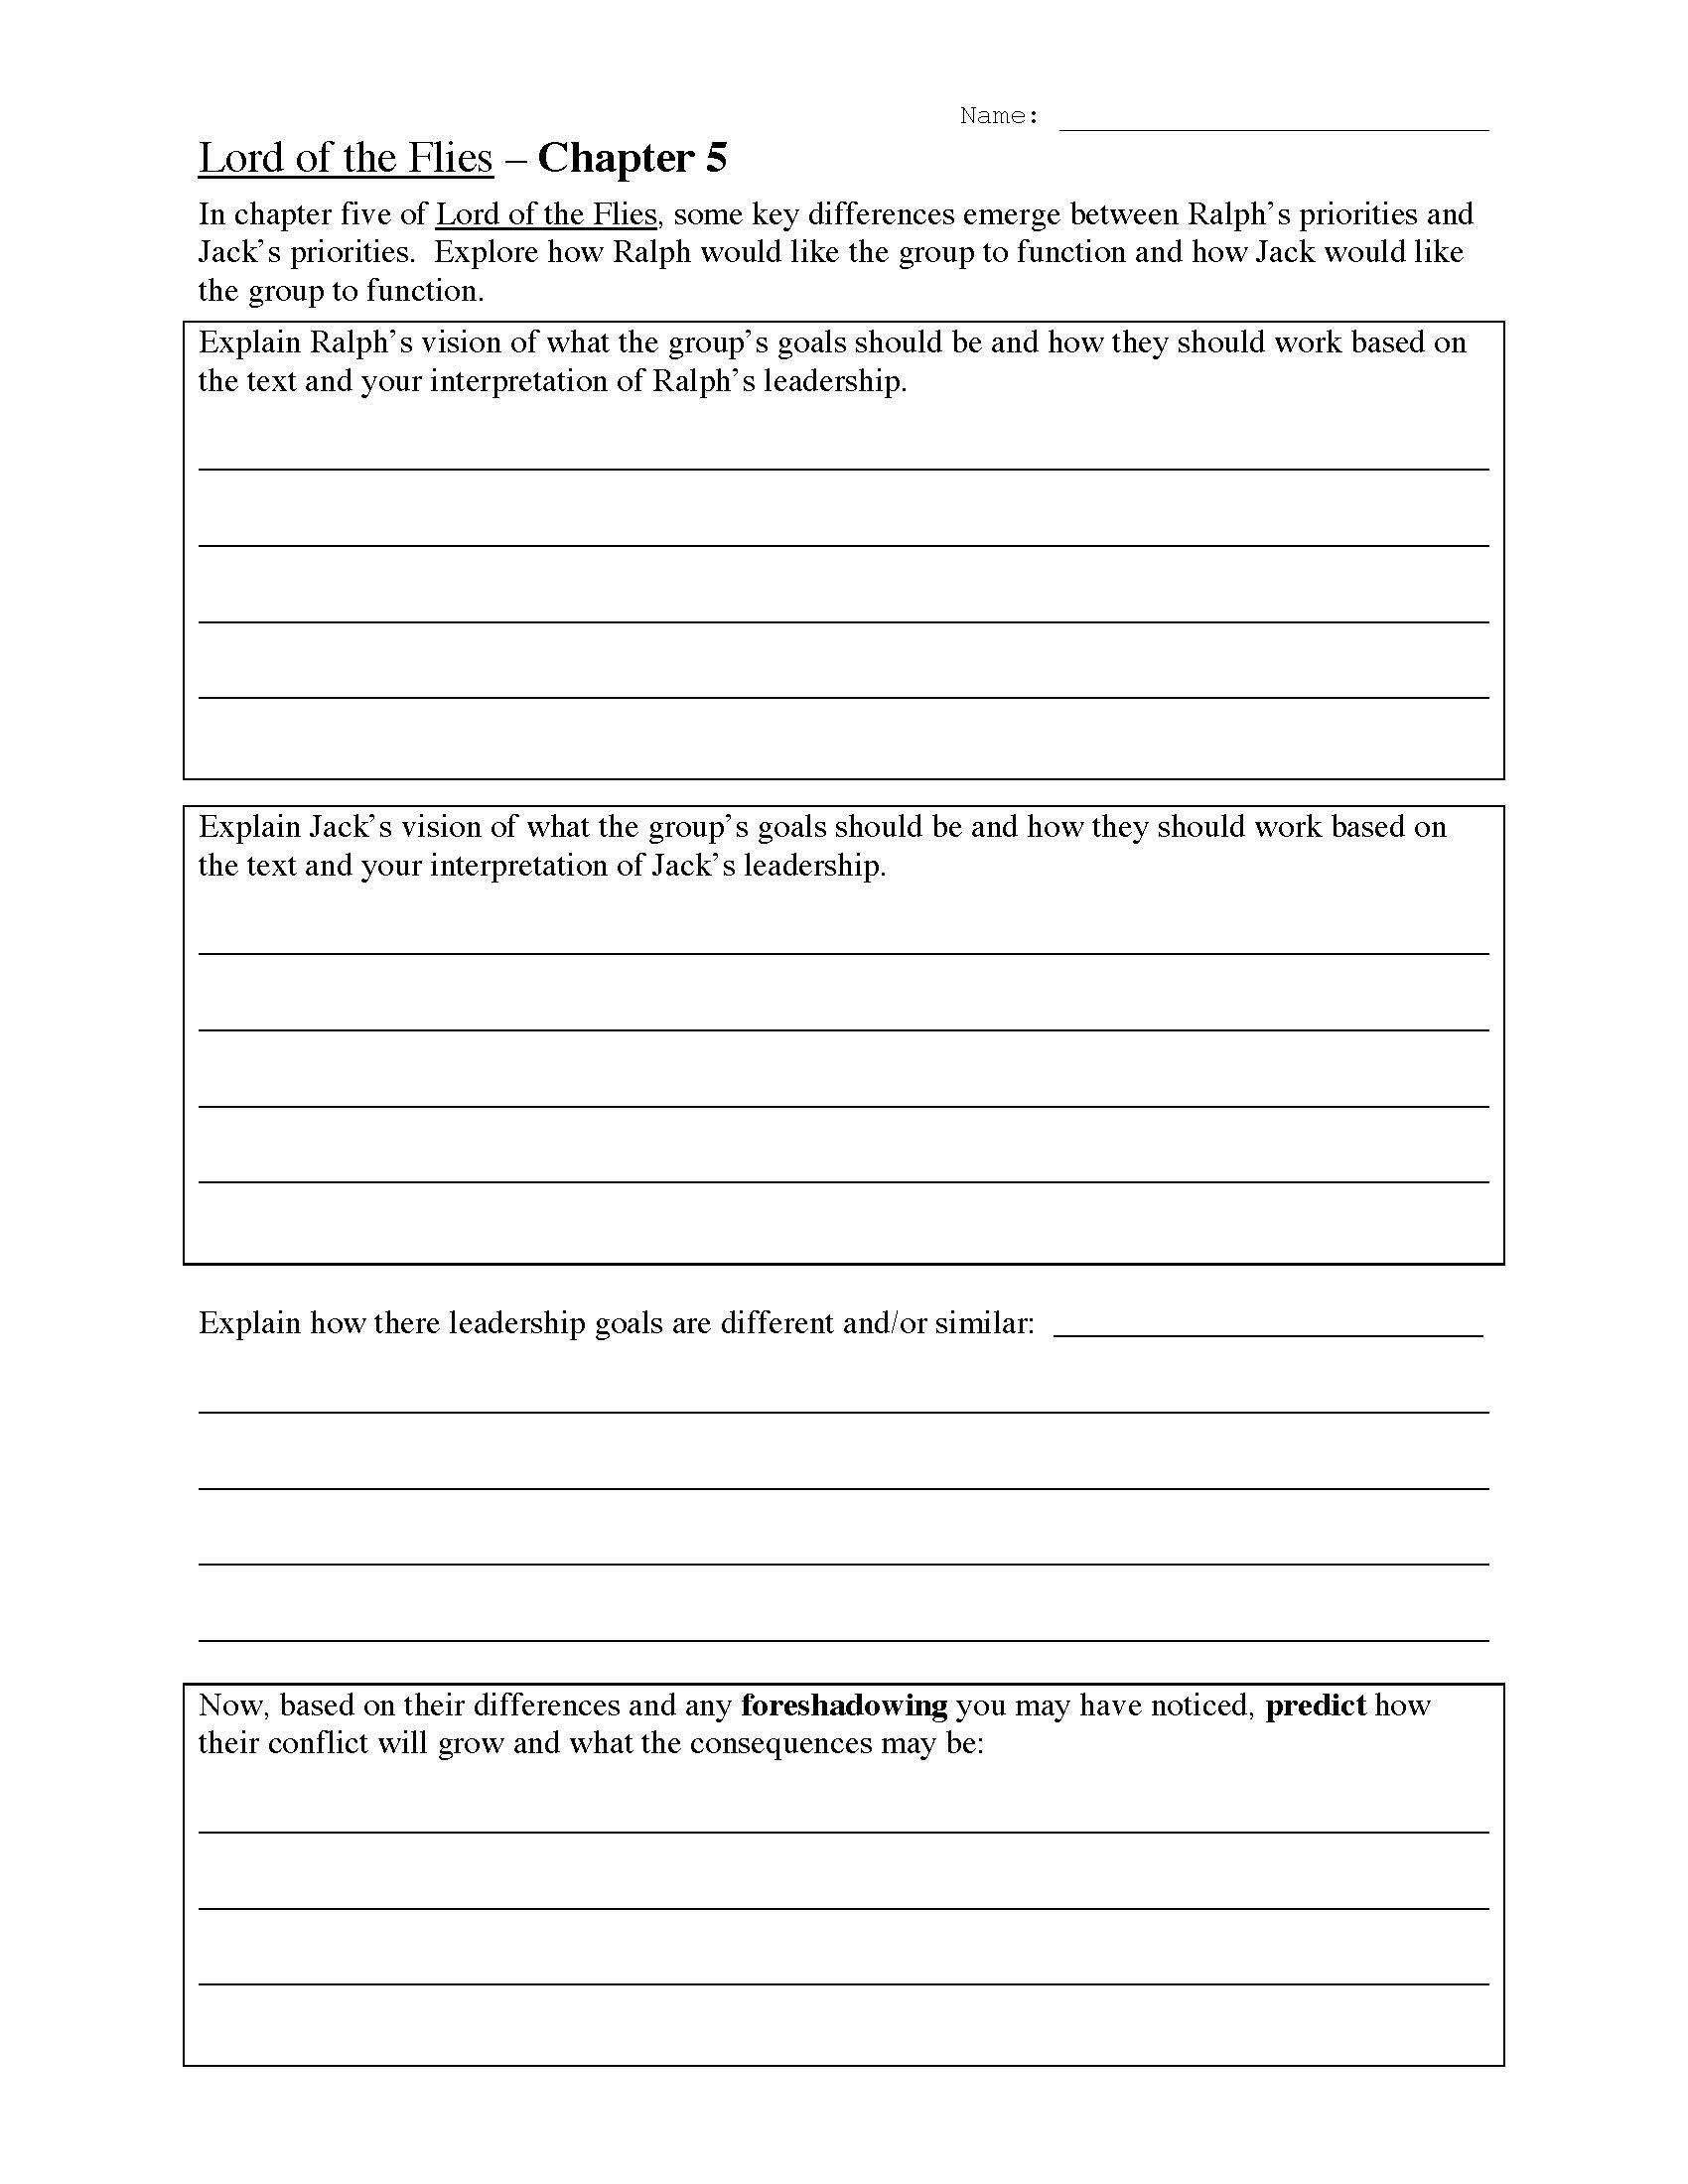 lord of the flies chapter 5 worksheet